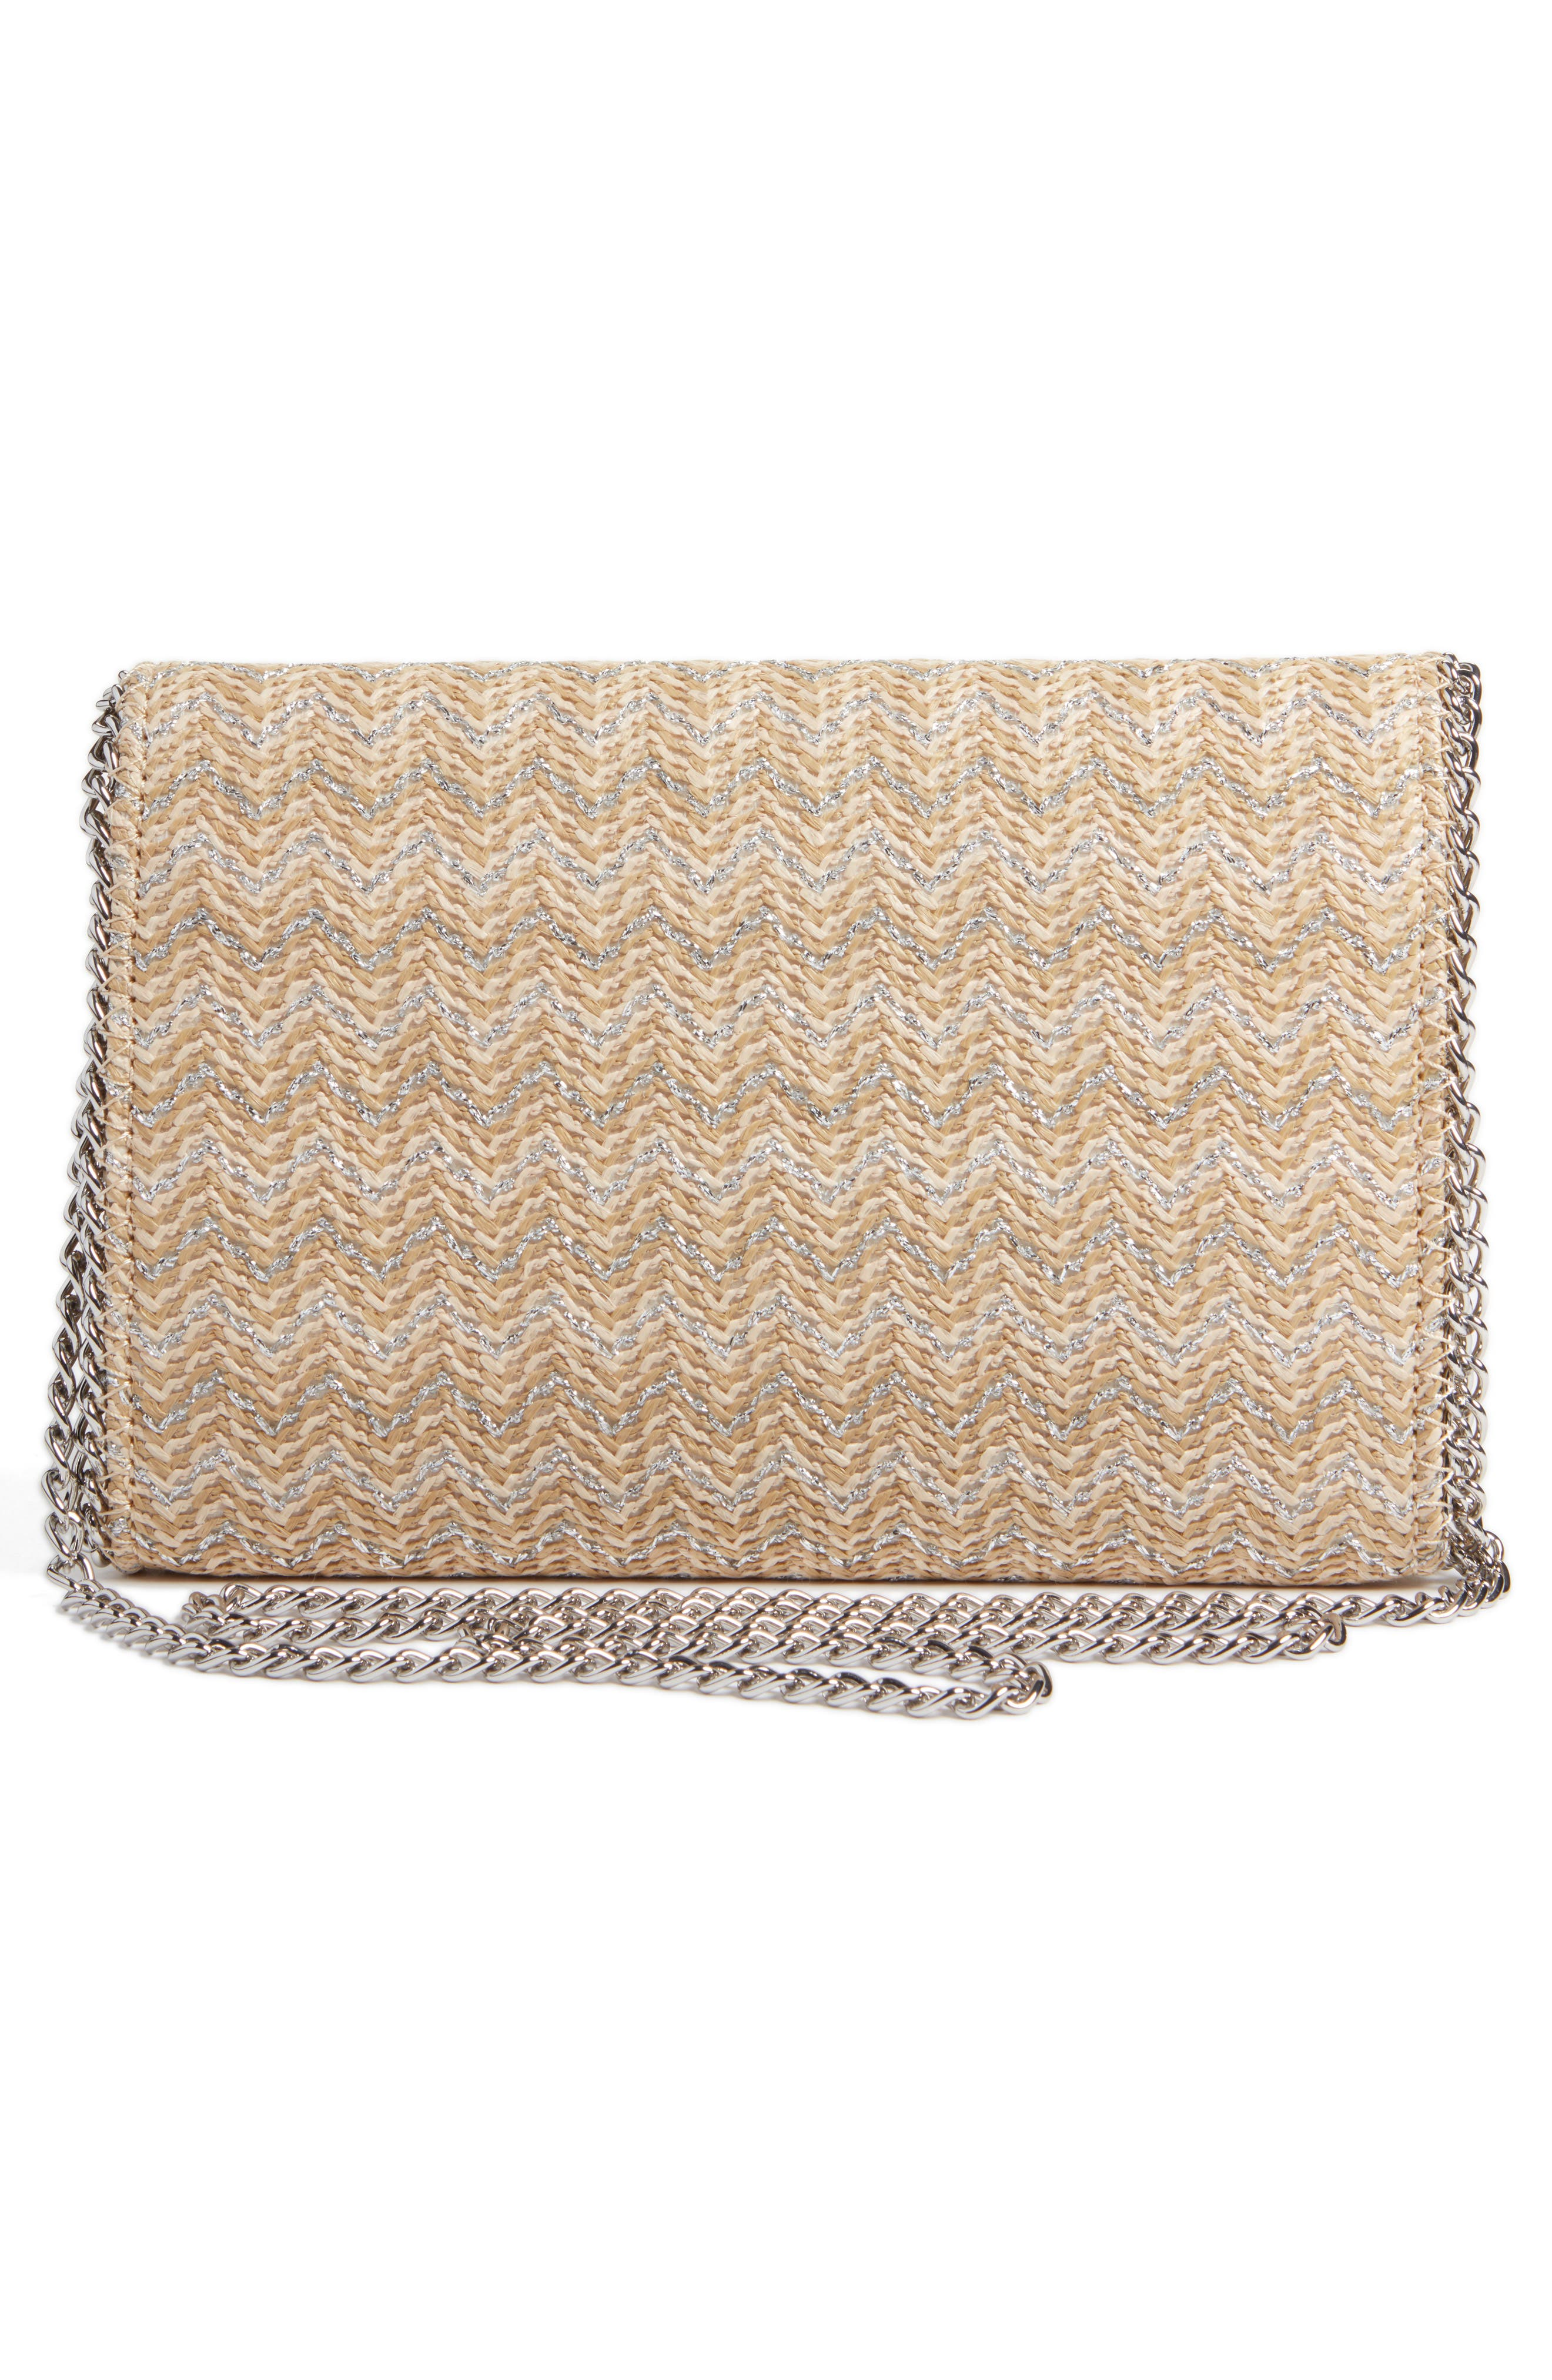 Alternate Image 3  - Chelsea28 Stripe Straw Convertible Clutch